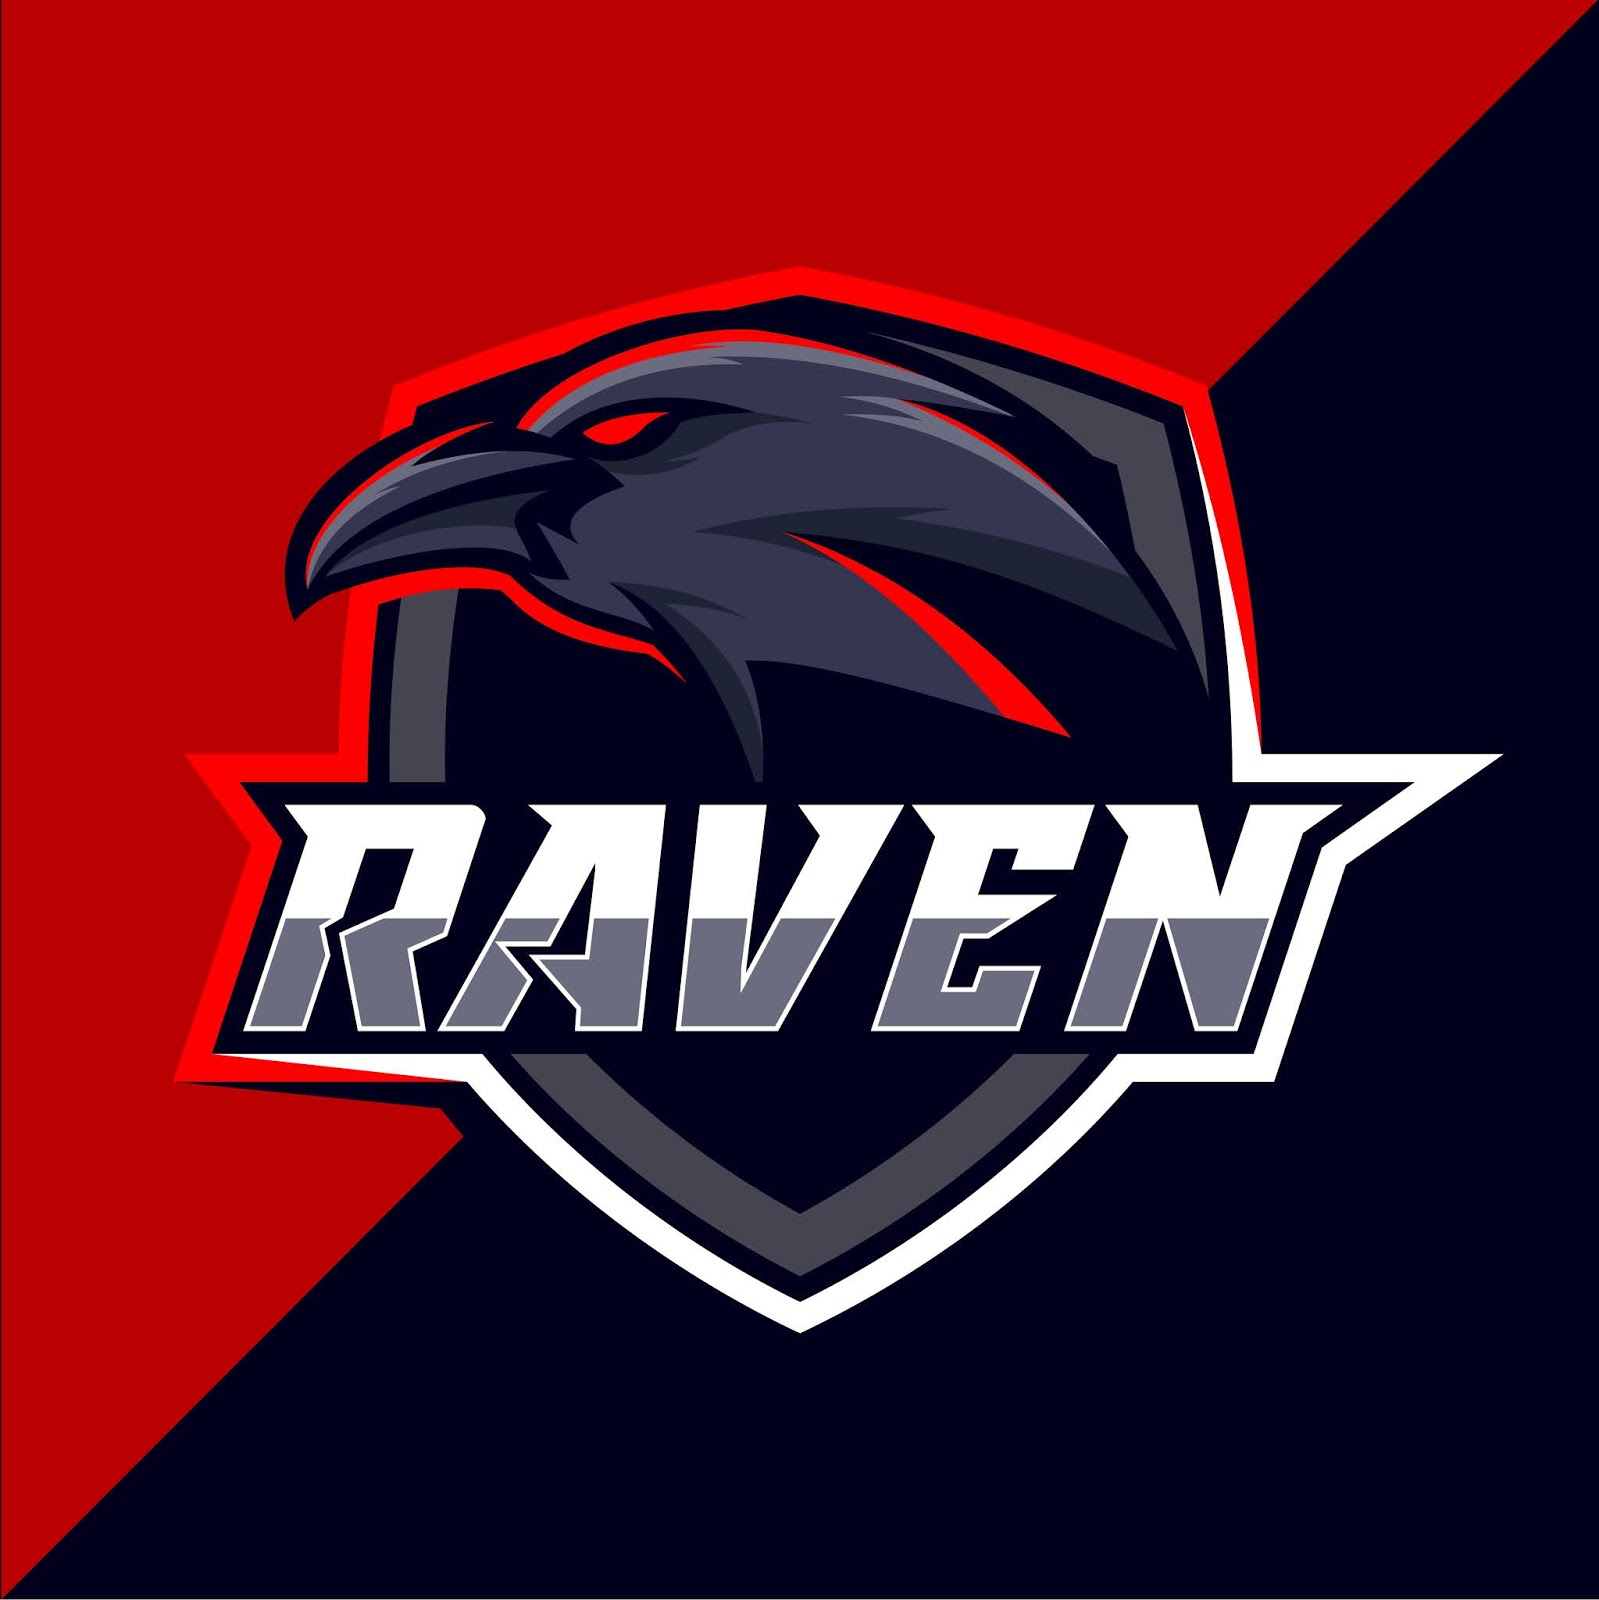 Raven Esport Logo Design Free Download Vector CDR, AI, EPS and PNG Formats